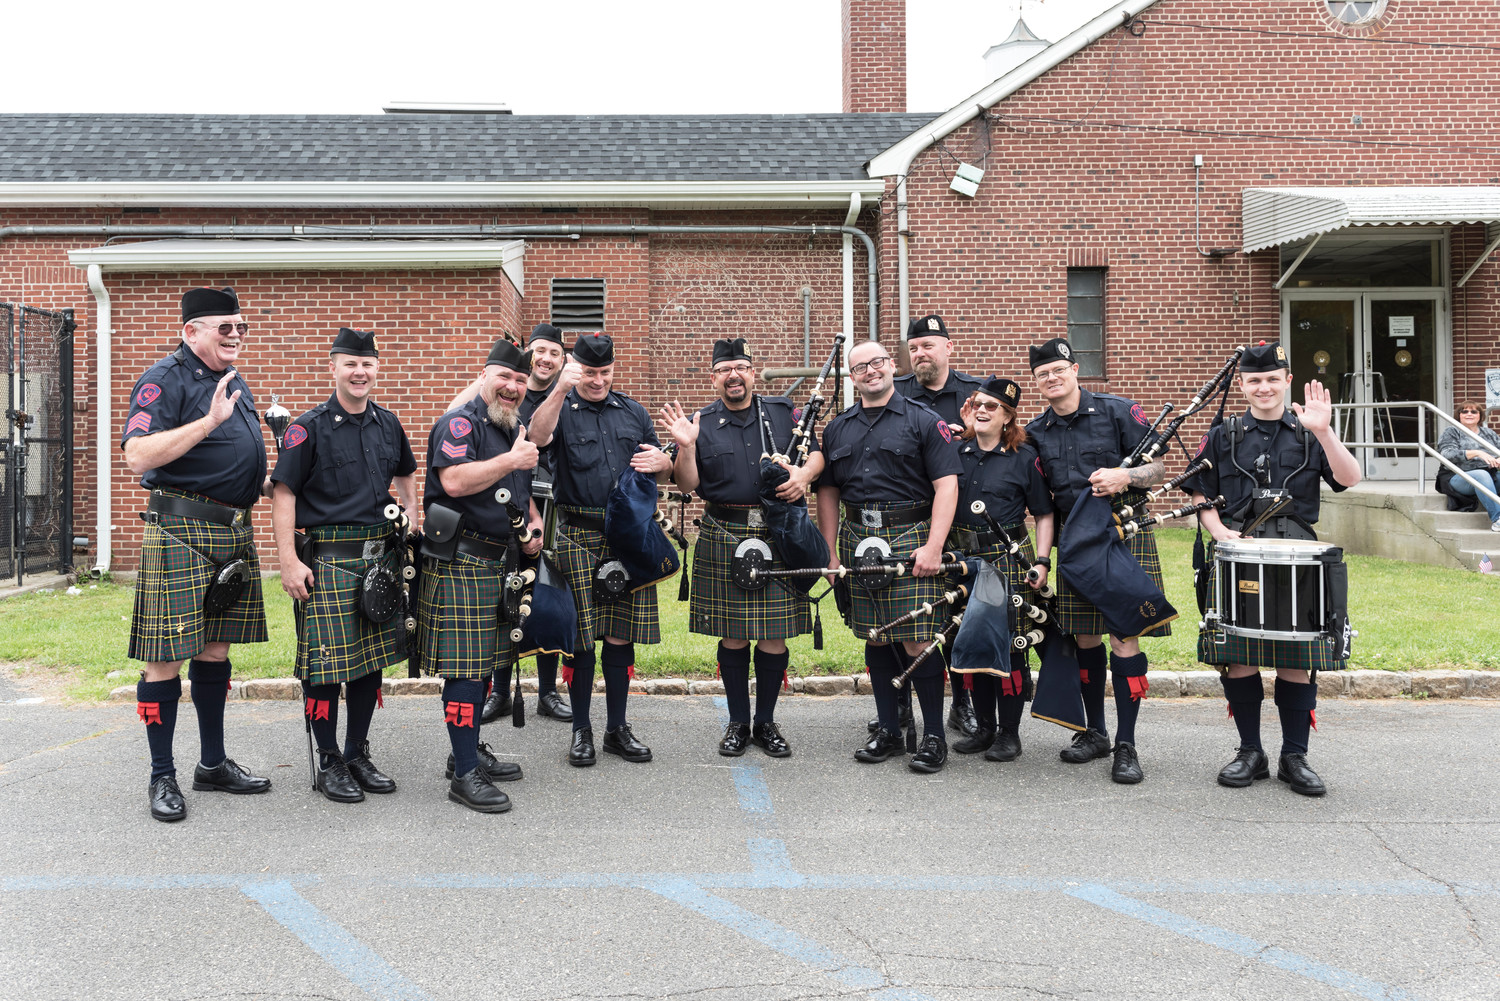 Members of the New York Corrections Department Pipe Band provided a little bagpipe magic at the parade in Glen Head.